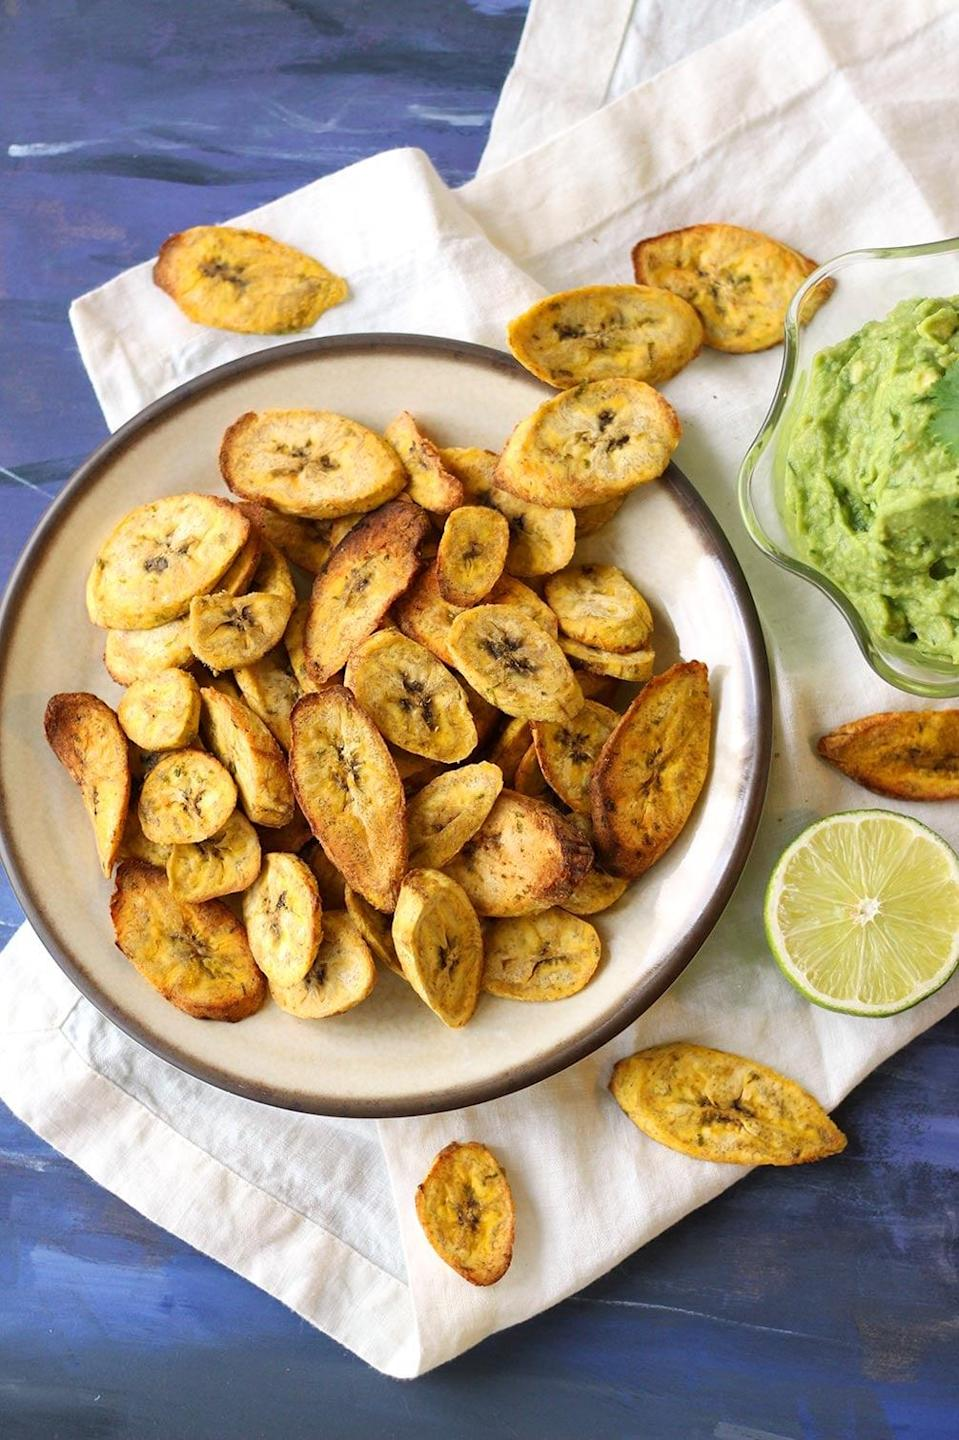 """<p>Craving chips but want something a bit healthier? These plantain crisps are just what you need. Spiced with chili, garlic, and lime, these have a zesty flavor that will keep you coming back for more. When dunked in creamy guacamole, we can almost guarantee that your taste buds will swoon in delight.</p> <p><strong>Get the recipe</strong>: <a href=""""https://zenandzaatar.com/air-fryer-plantain-chips-with-creamy-guacamole/"""" class=""""link rapid-noclick-resp"""" rel=""""nofollow noopener"""" target=""""_blank"""" data-ylk=""""slk:air fryer plantain chips with creamy guacamole"""">air fryer plantain chips with creamy guacamole</a></p>"""